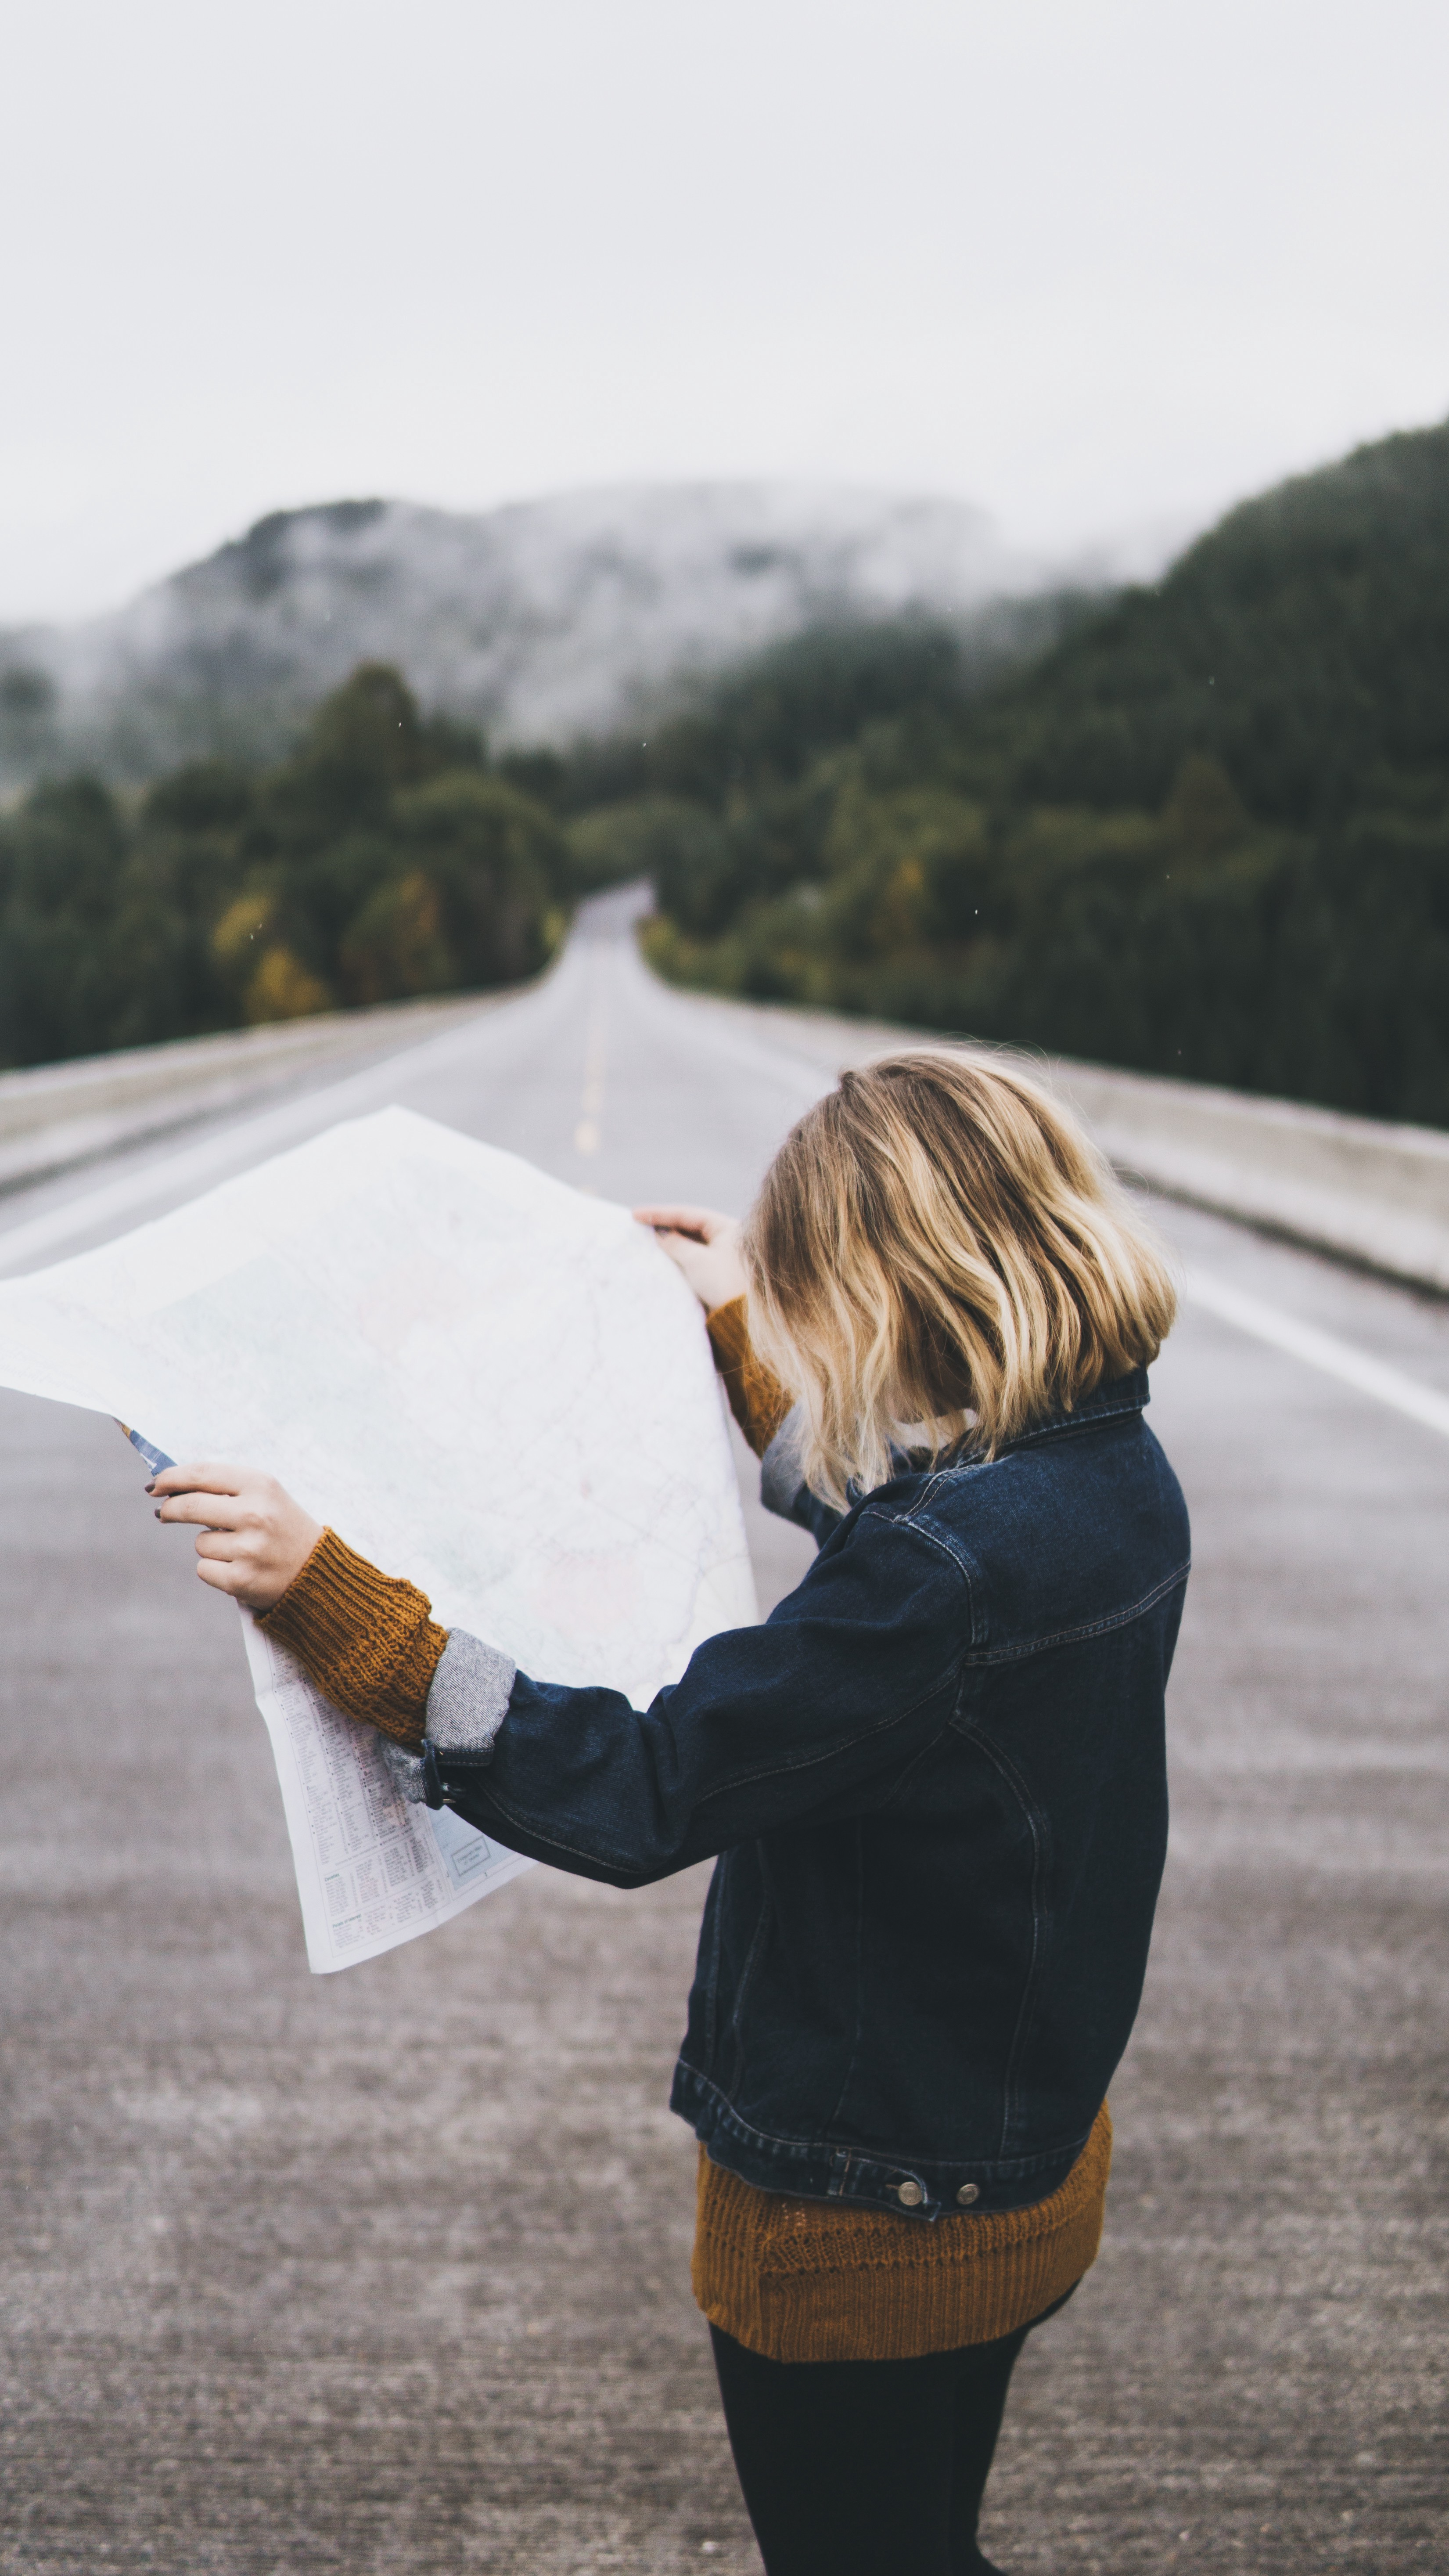 A person with short blonde hair looking at a large blank piece of paper in the middle of the road.